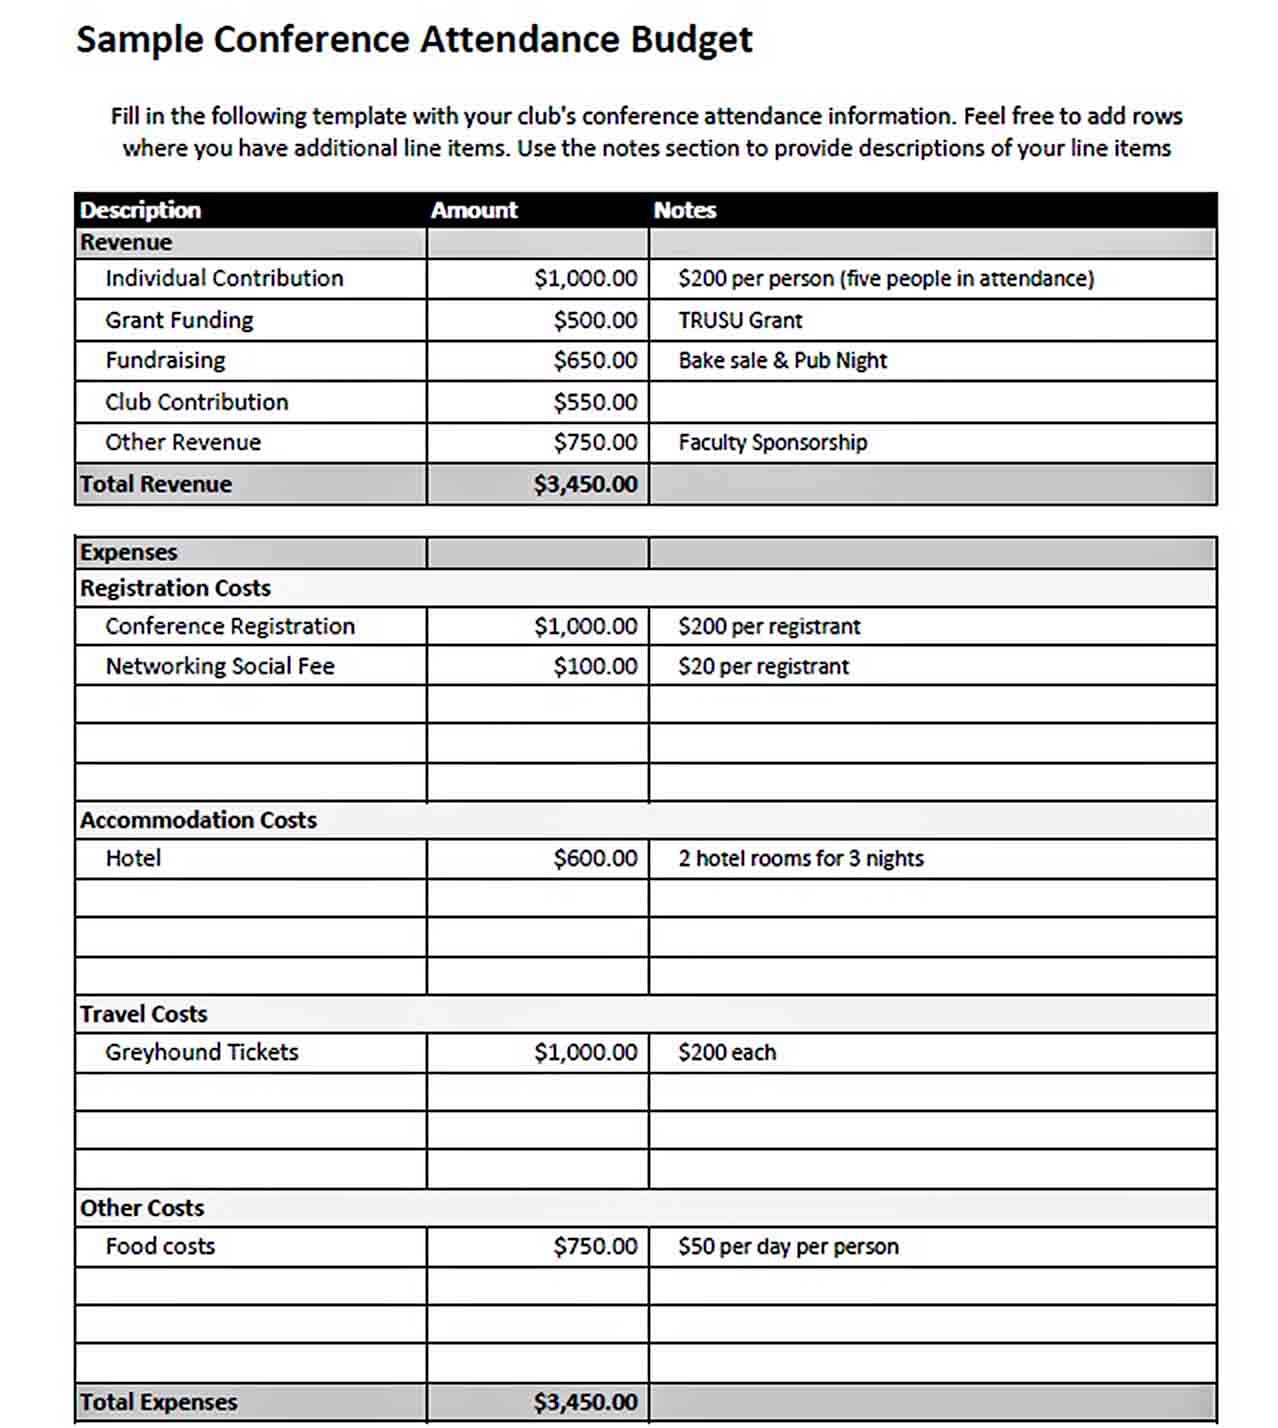 Conference Attendance Budget Template sample 1